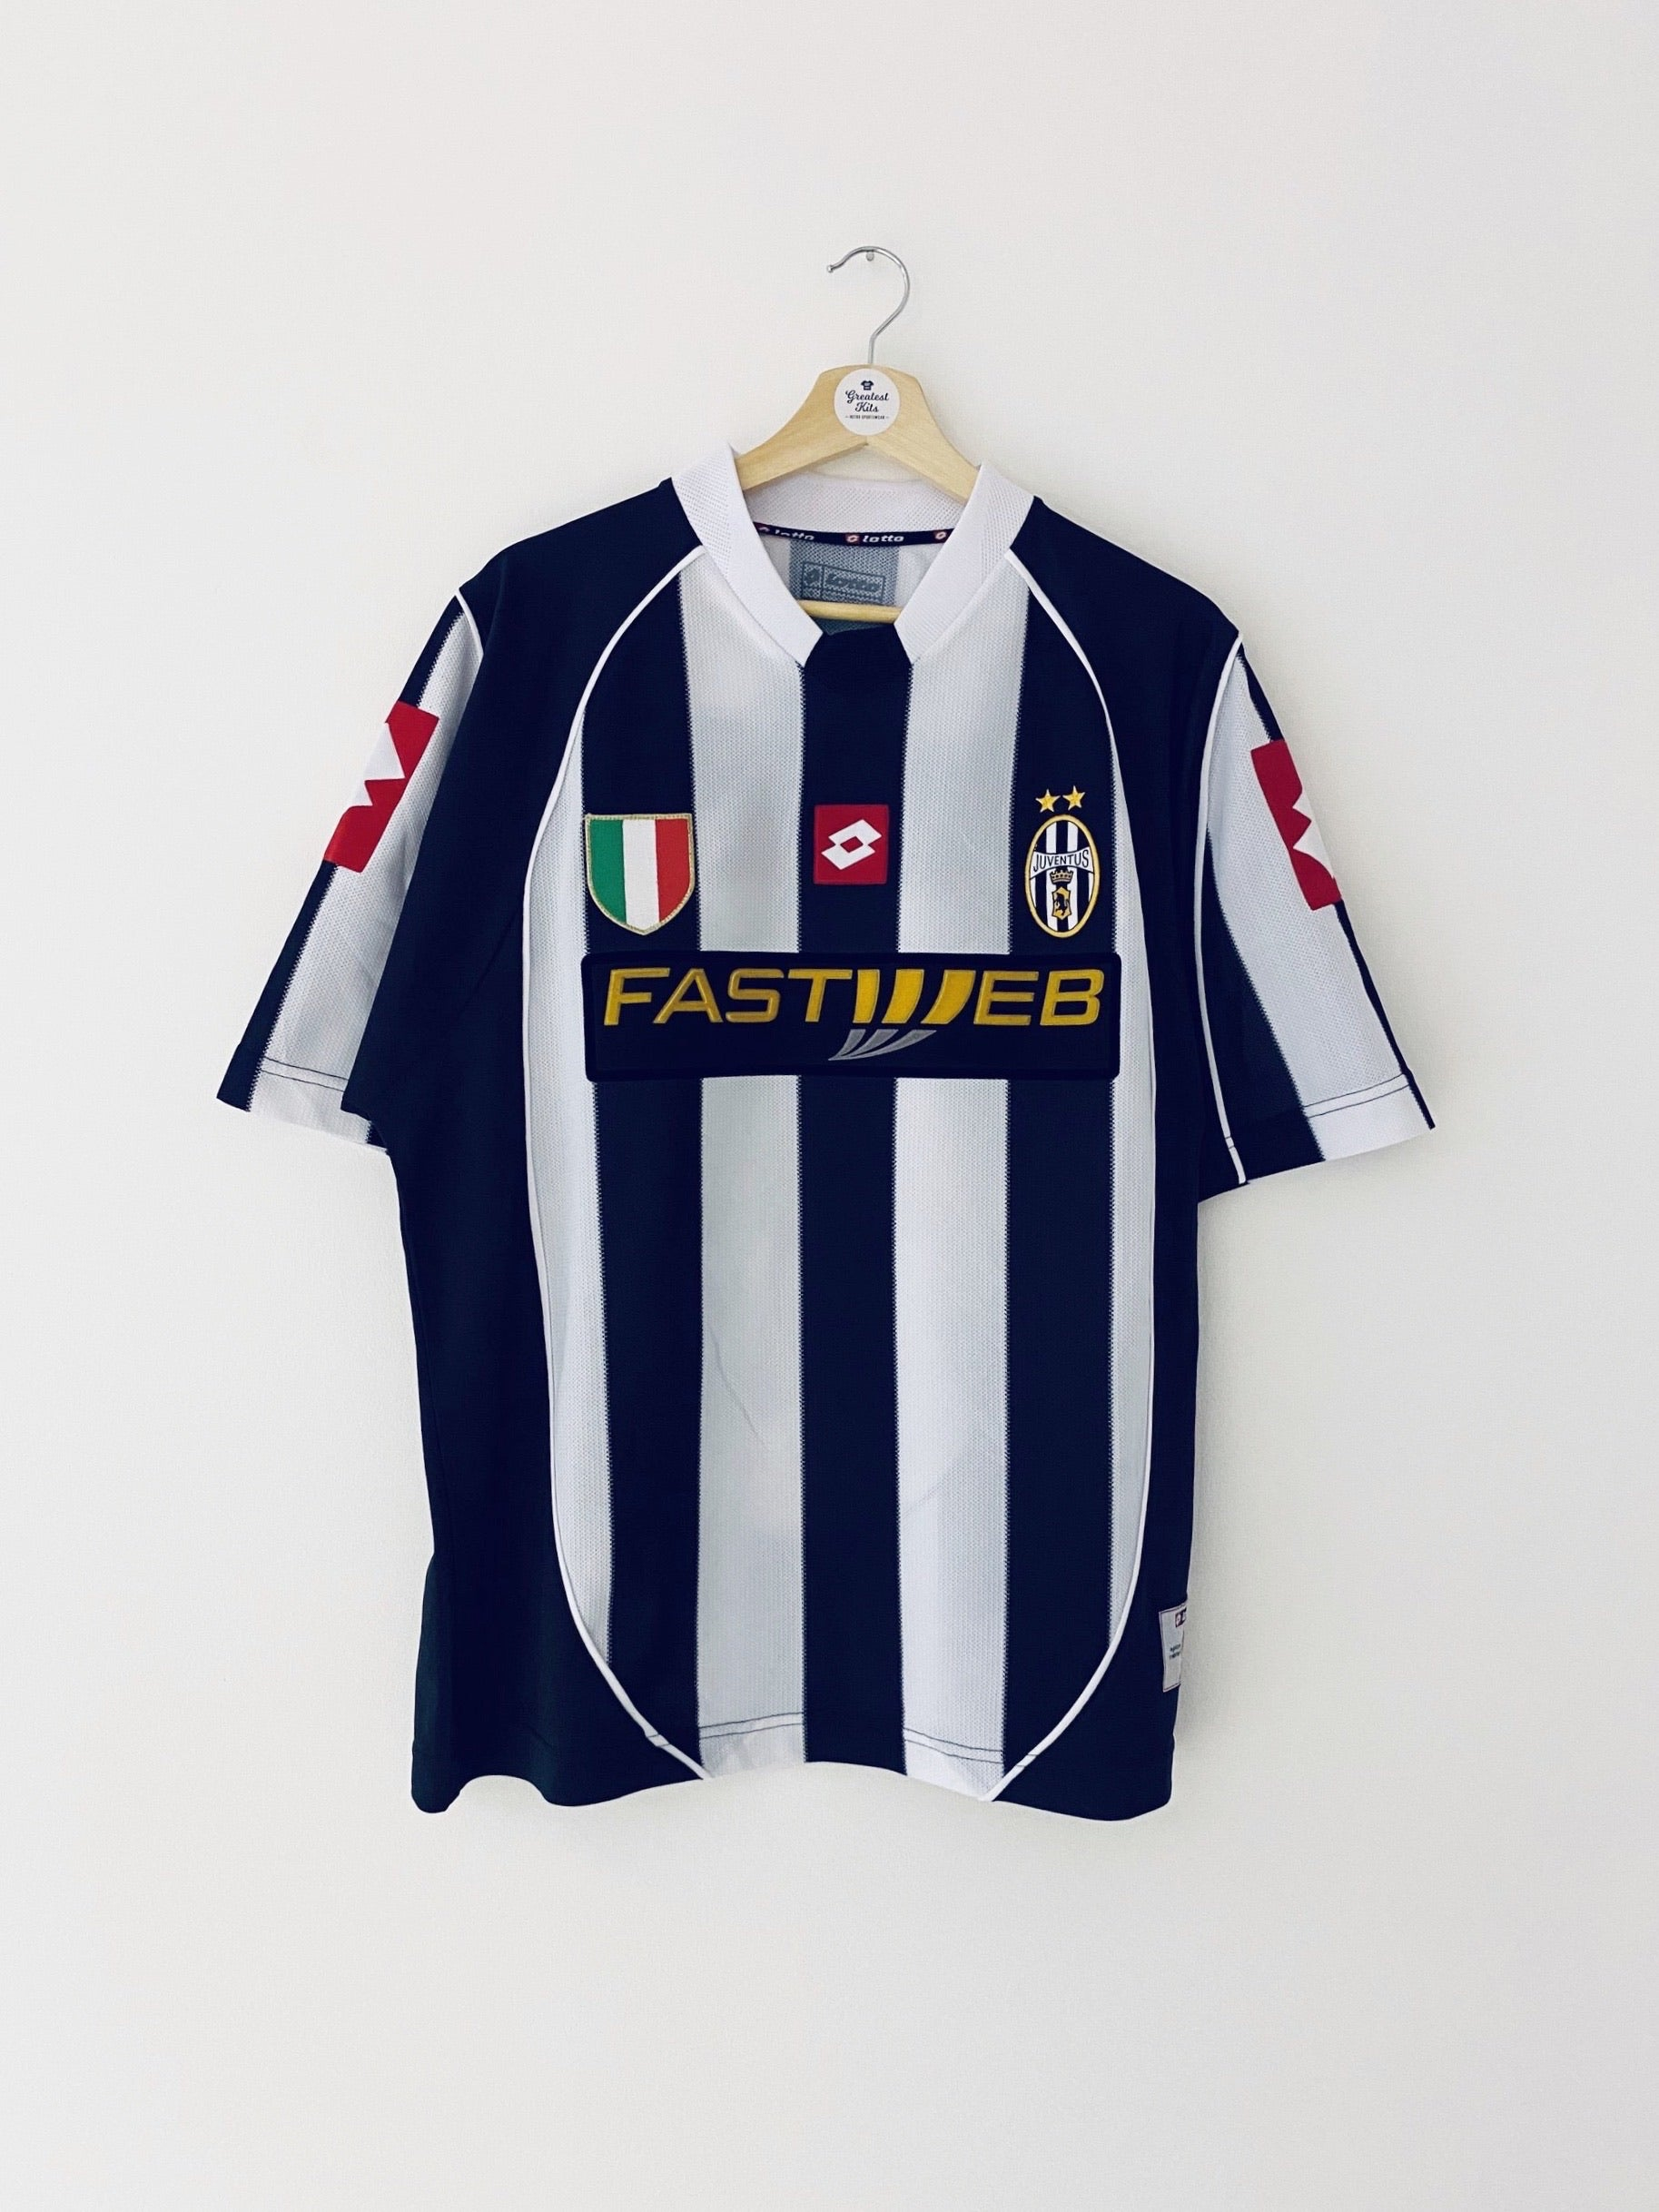 2002/03 Juventus Home Shirt Del Piero #10 (L) 7.5/10